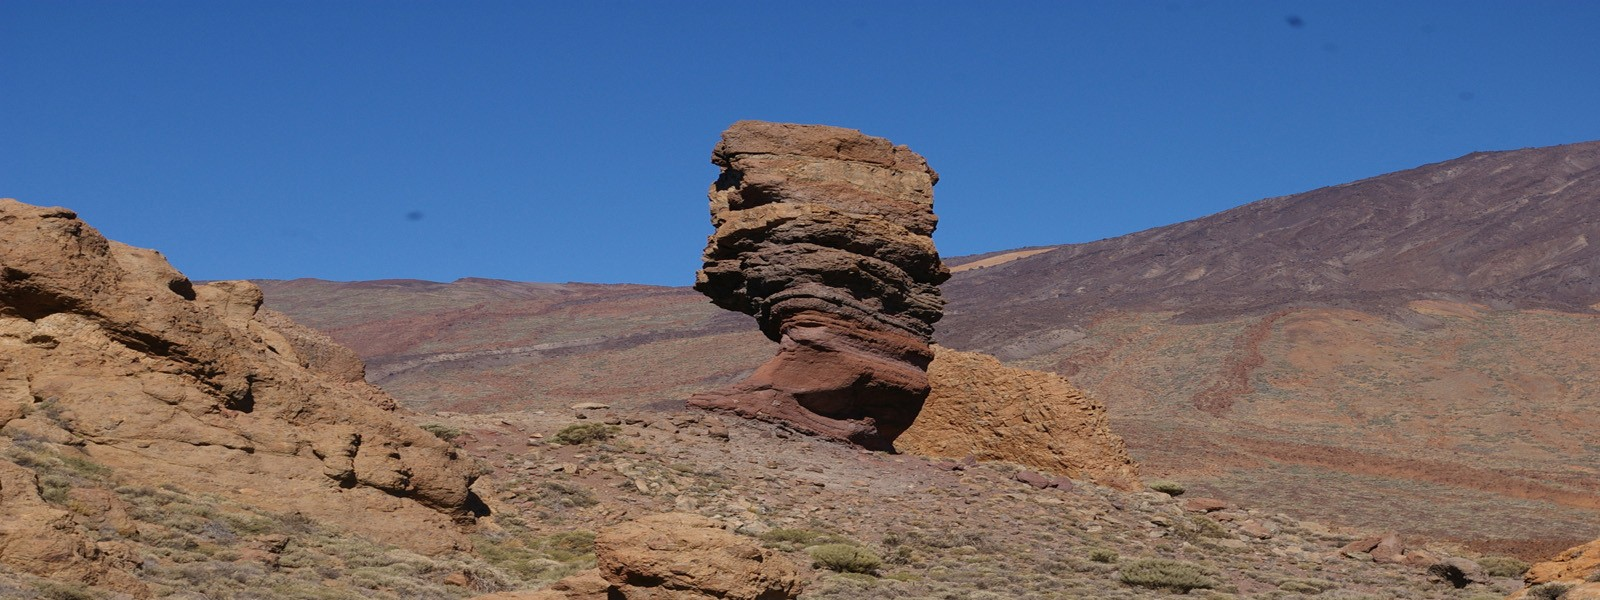 Tenerife: a tale of mountain ranges, pilot whales and colonial towns!